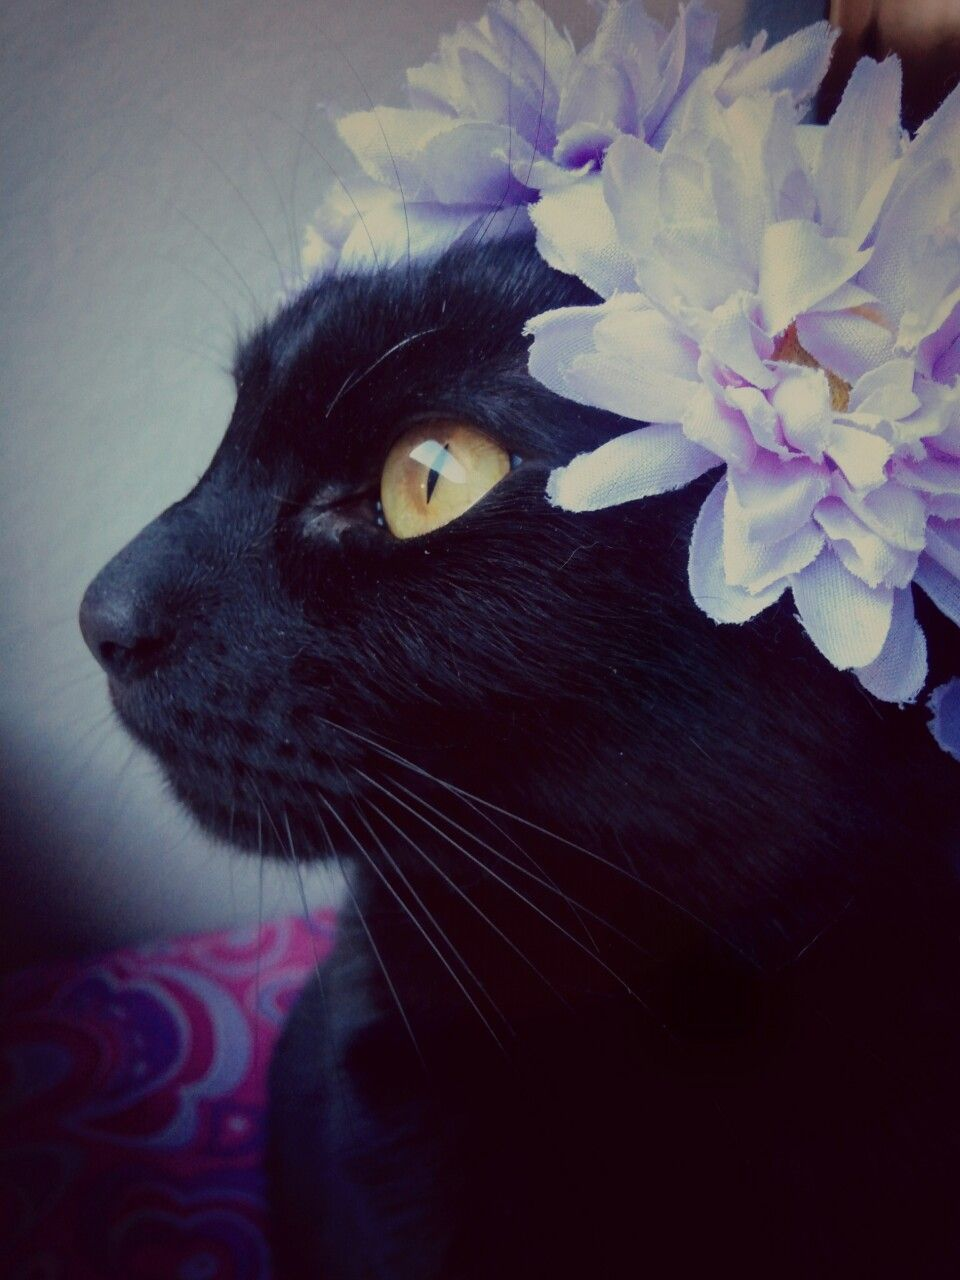 Cats Wearing Floral Crowns Cat With Flower Crown Cute Cat With